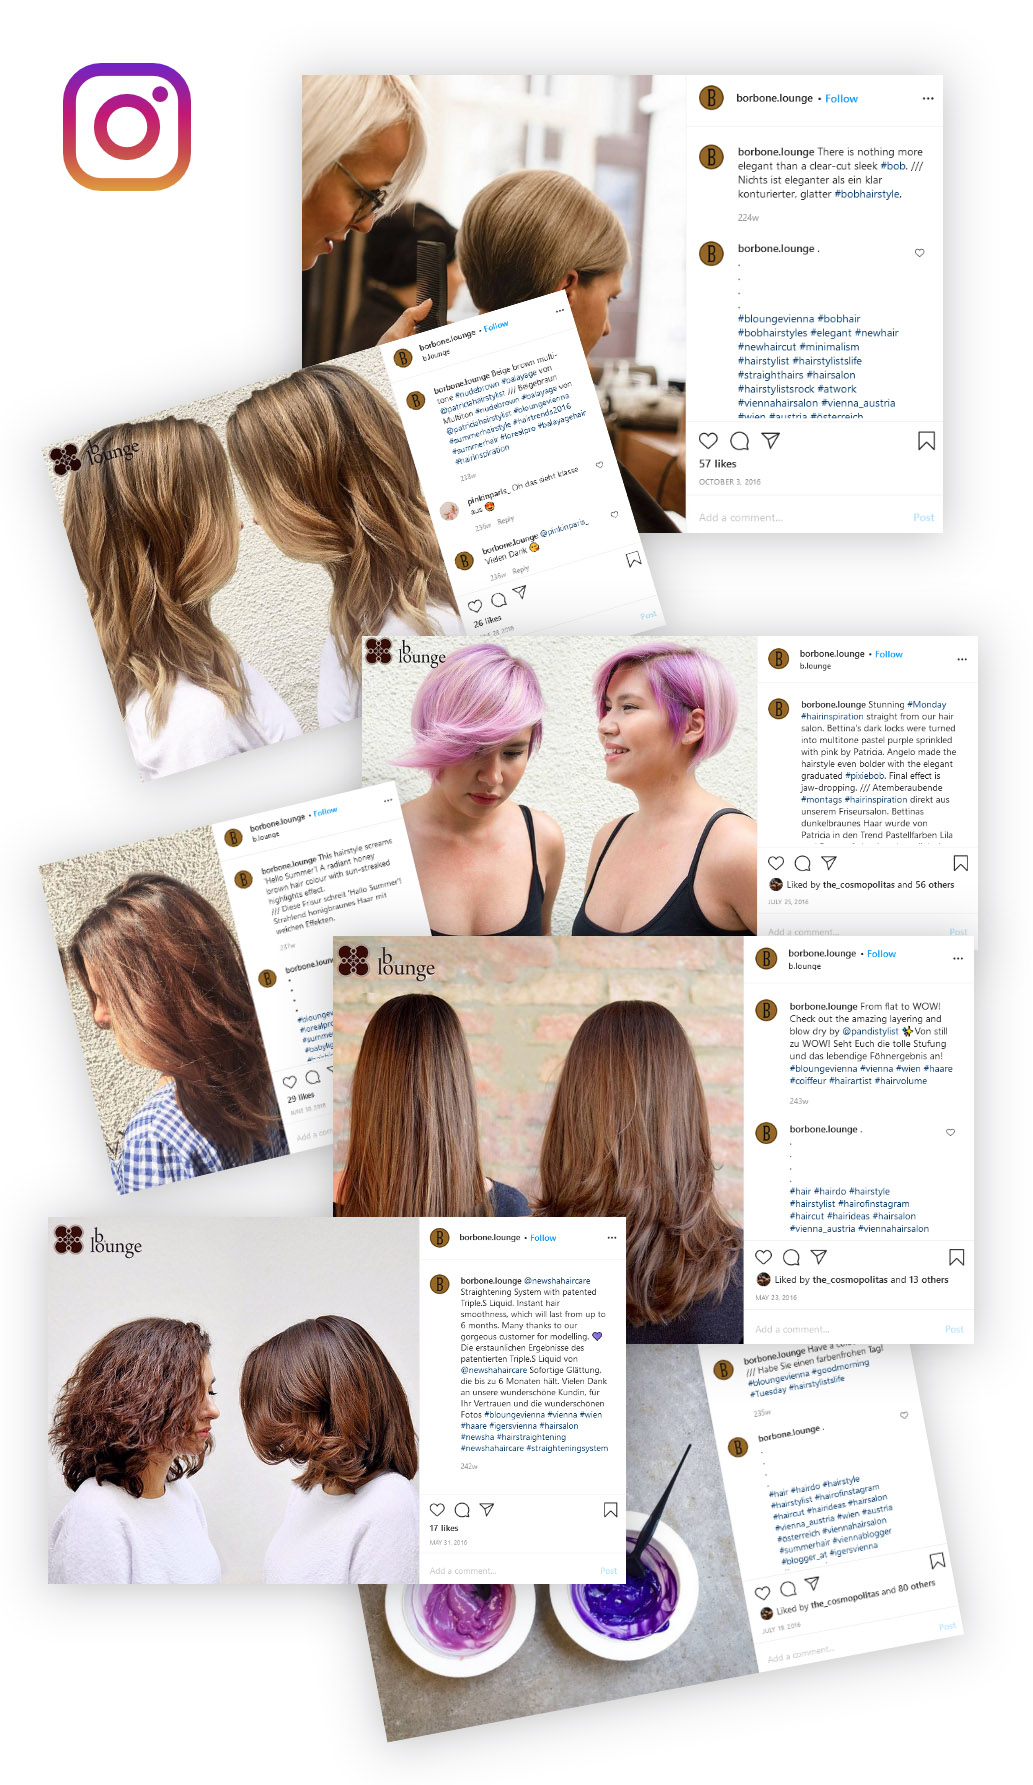 Social Media Management for a Viennese Hair Salon